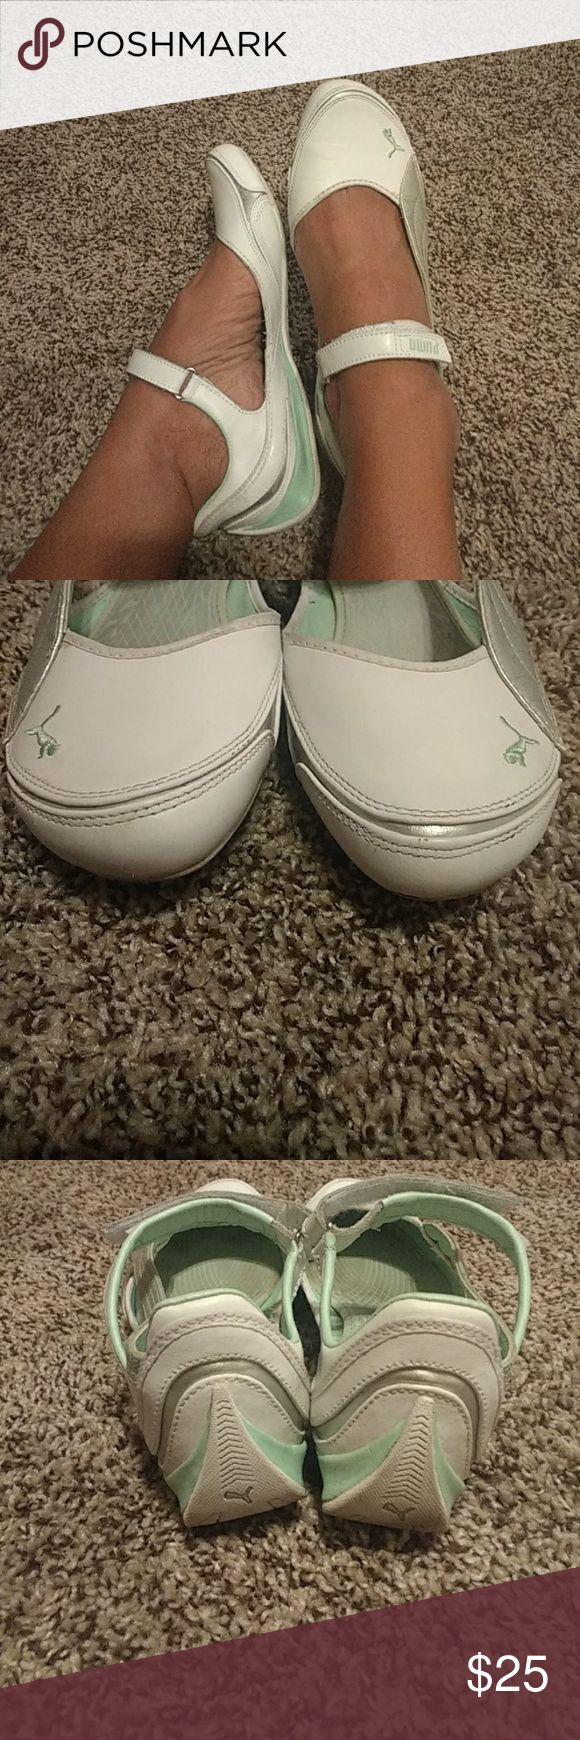 SALE!!Puma sz 10 Great condition overall.. Wear shoes inside...I wear a 9 and I had to go up on this shoe. It says sz 10 but fits more like a 9/9.5 These are super comfortable white teal and silver Velcro strap Puma Shoes Sneakers